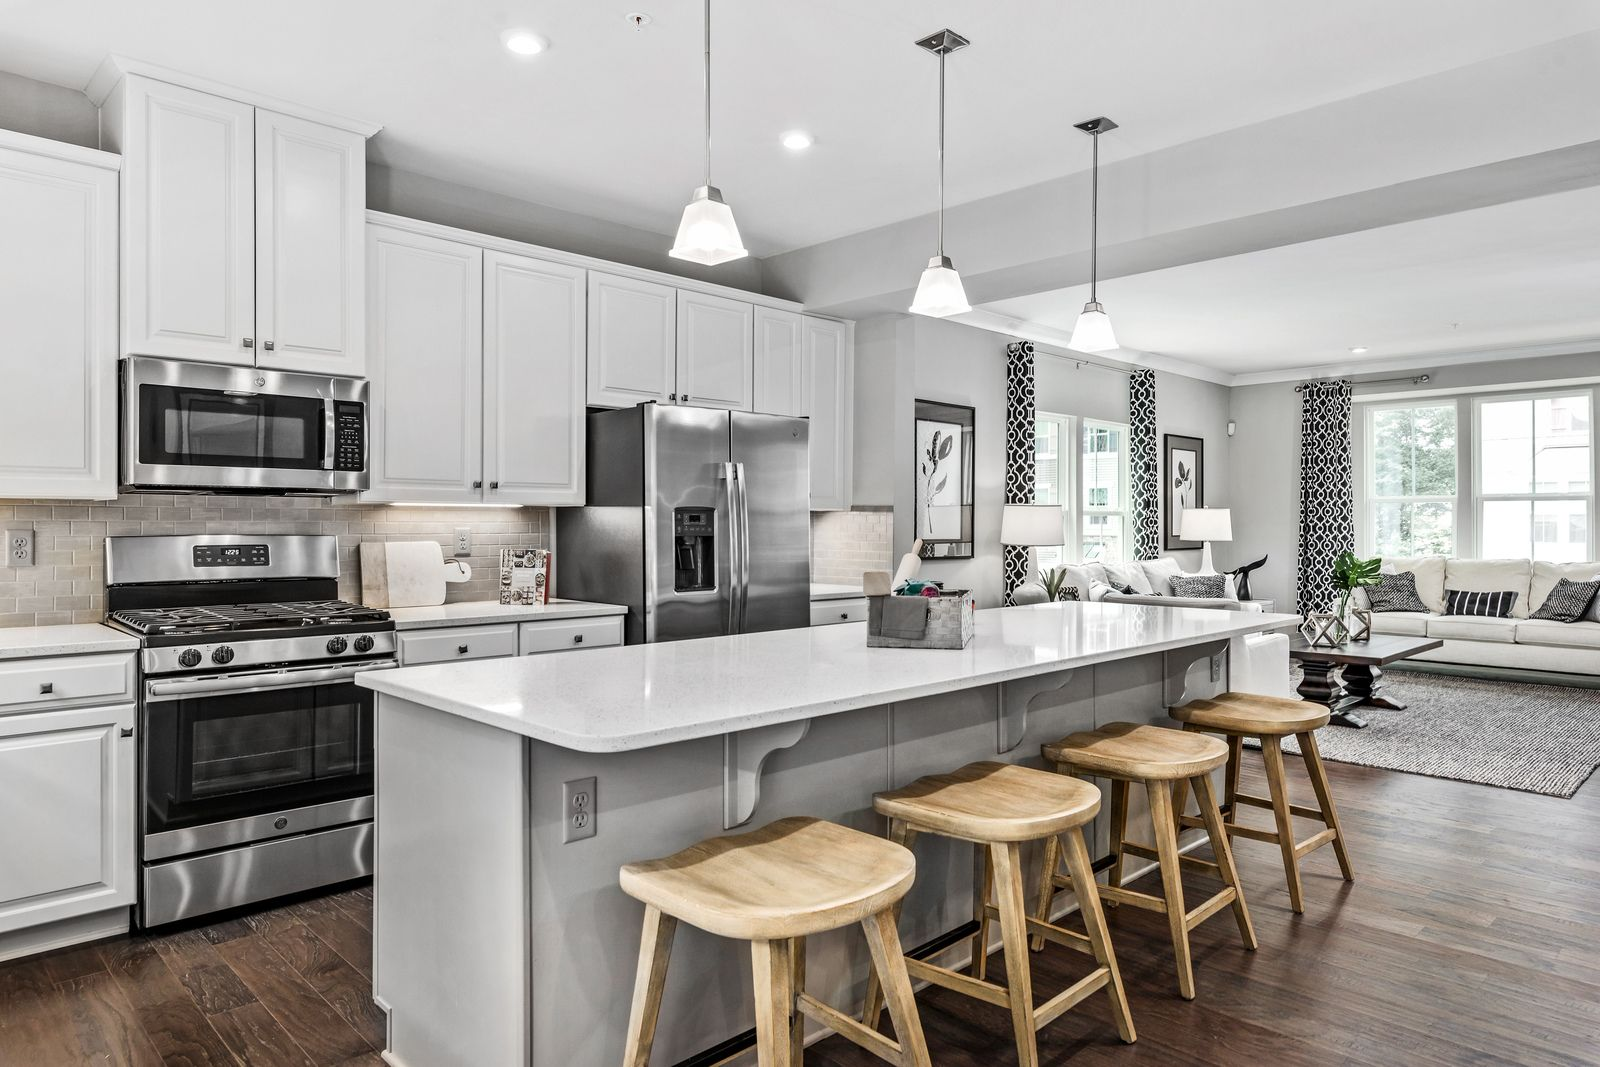 Kitchen featured in the Wexford By Ryan Homes in Baltimore, MD